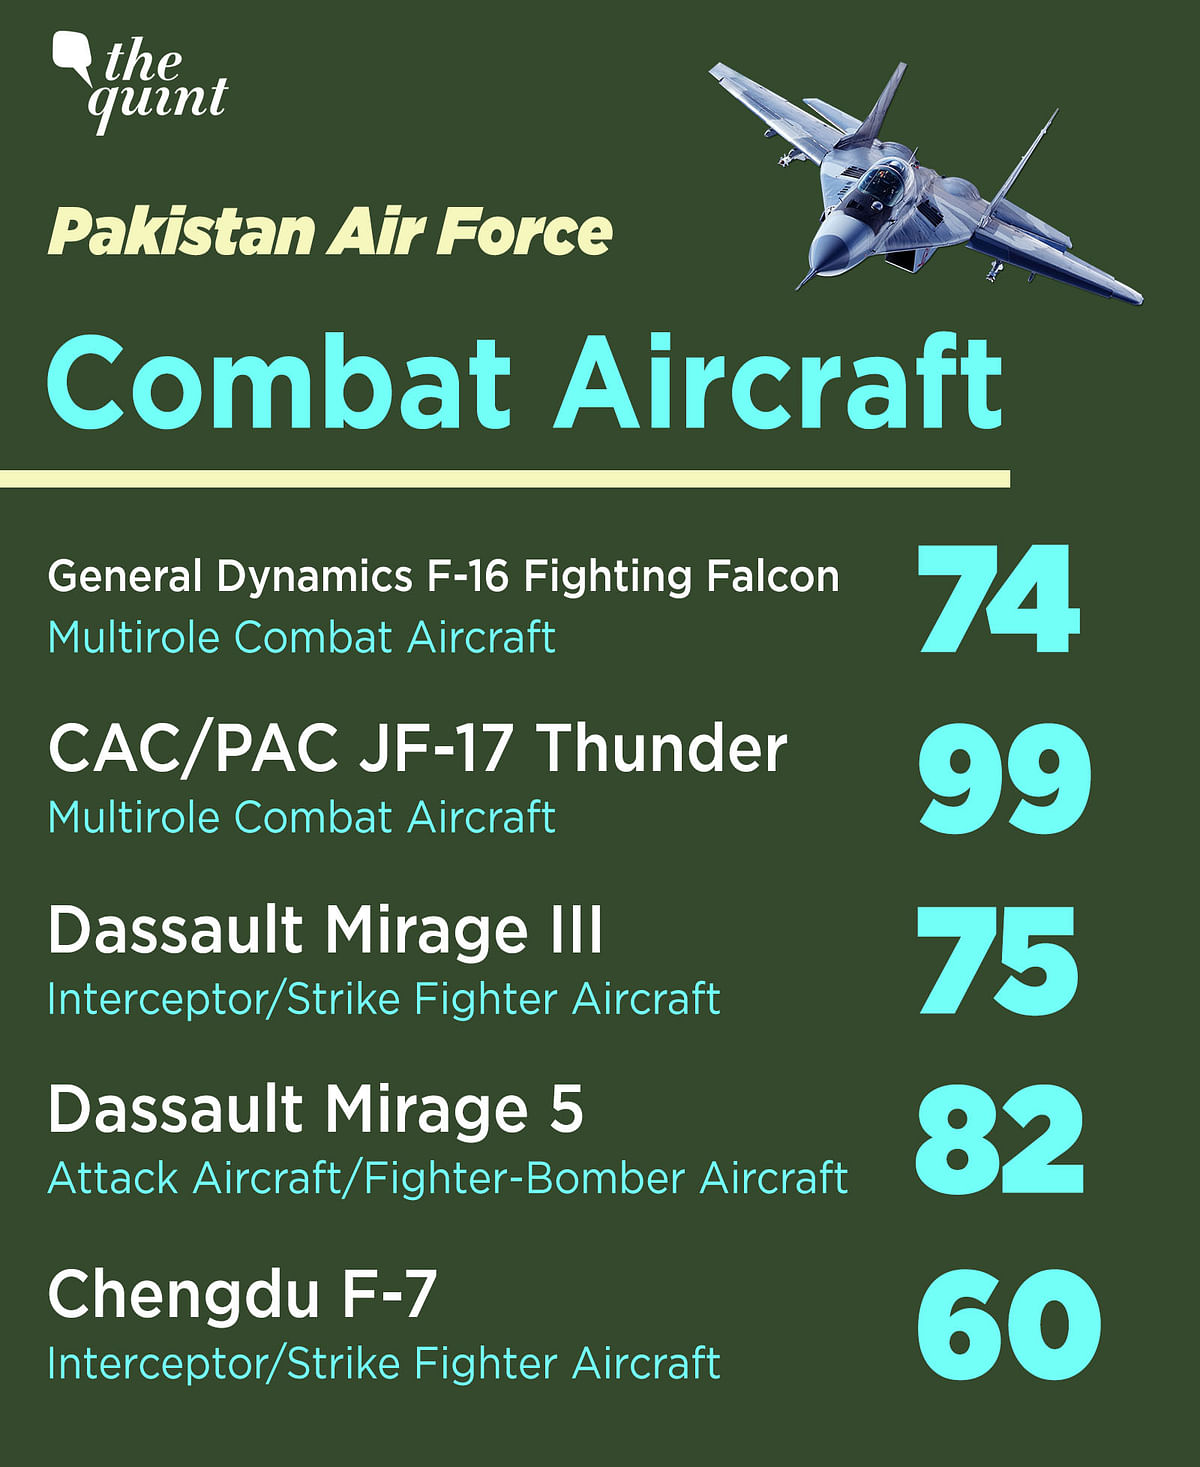 Indian Air Force vs Pak Air Force: Here's How the Numbers Stack Up